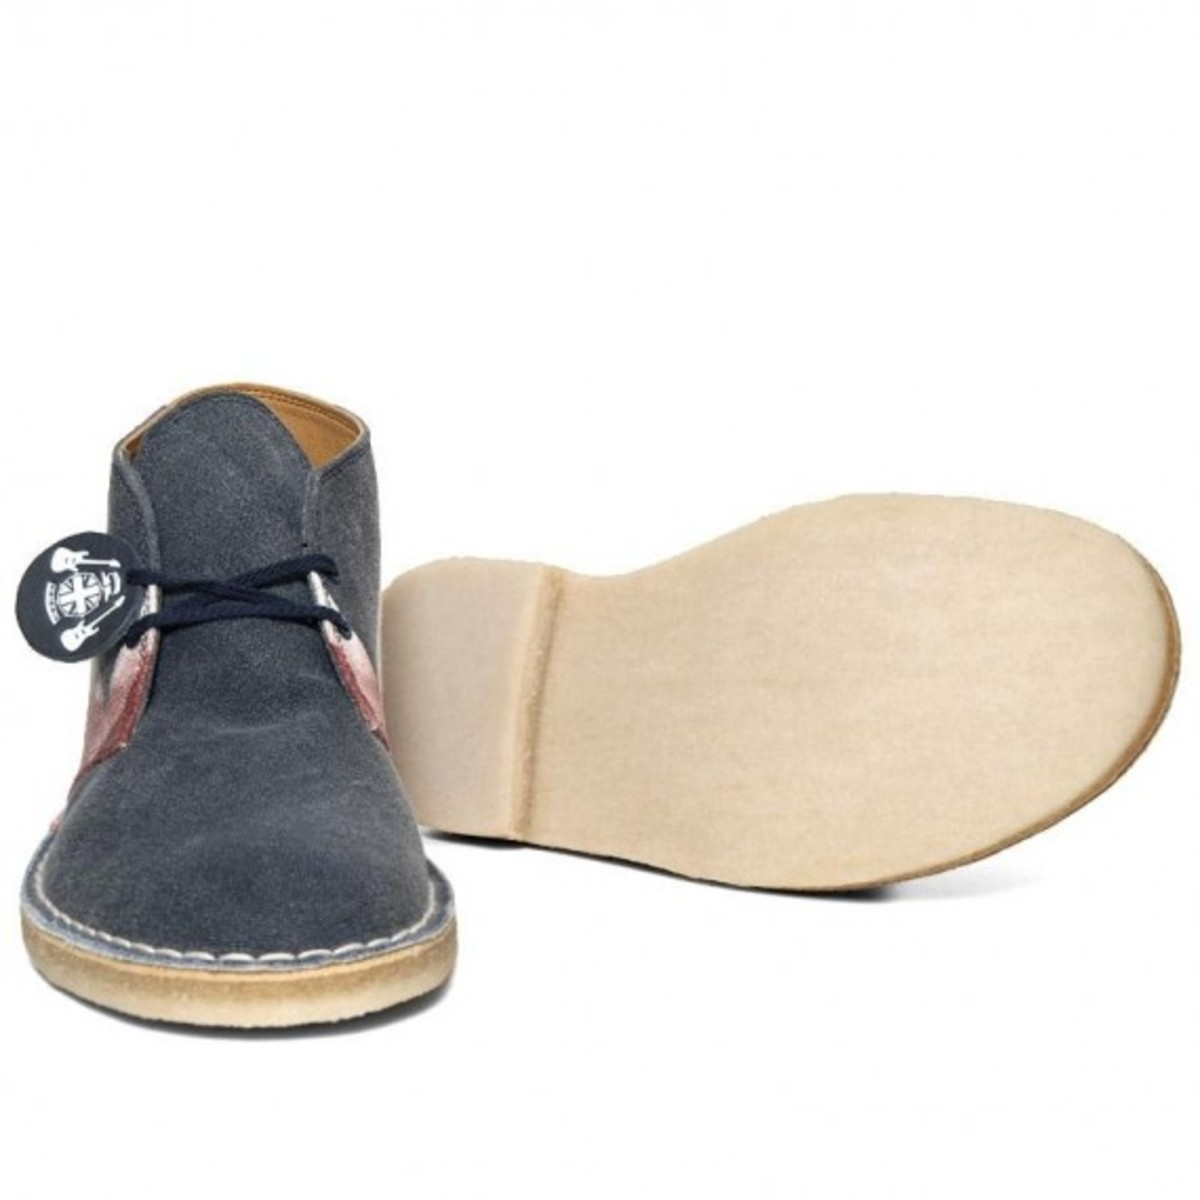 clarks-originals-desert-boot-punk-edition-04